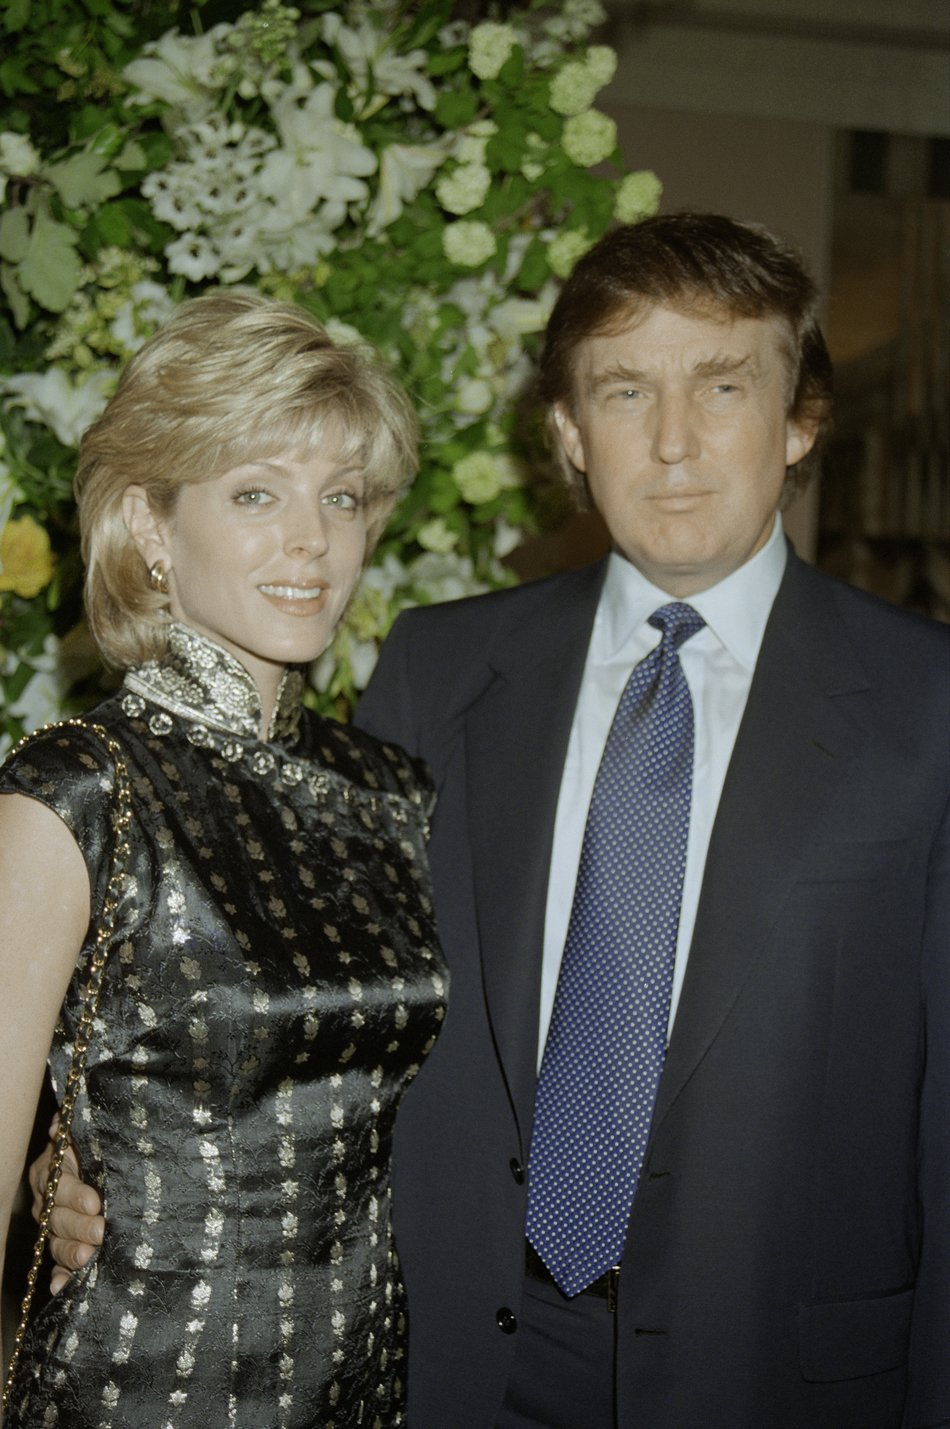 Donald Trump with his second wife, Marla Maples, at Claridge's hotel, London, to host a launch event for his New York hotel, the Trump International Hotel and Tower, 4th June 1996   Photo: GettyImages